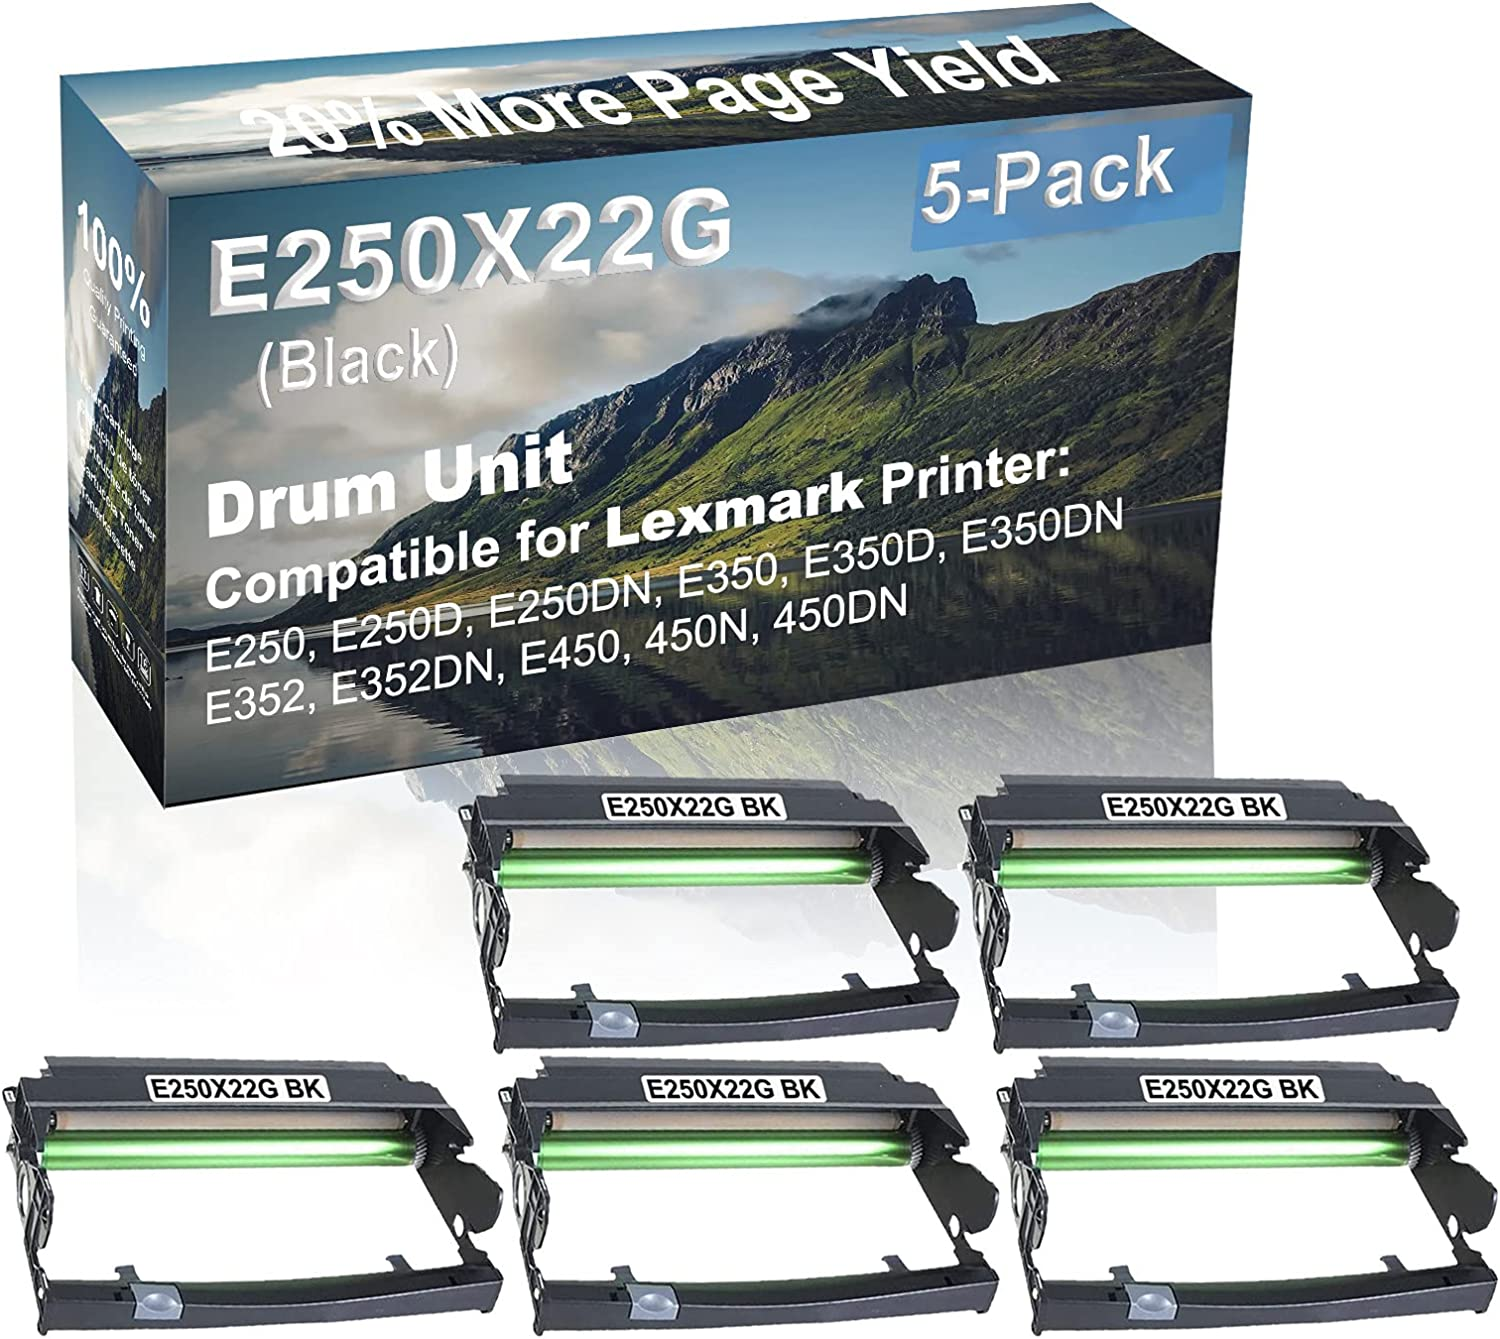 5-Pack Compatible Drum Unit (Black) Replacement for Lexmark E250X22G Drum Kit use for Lexmark E352DN, E450, 450N, 450DN Printer